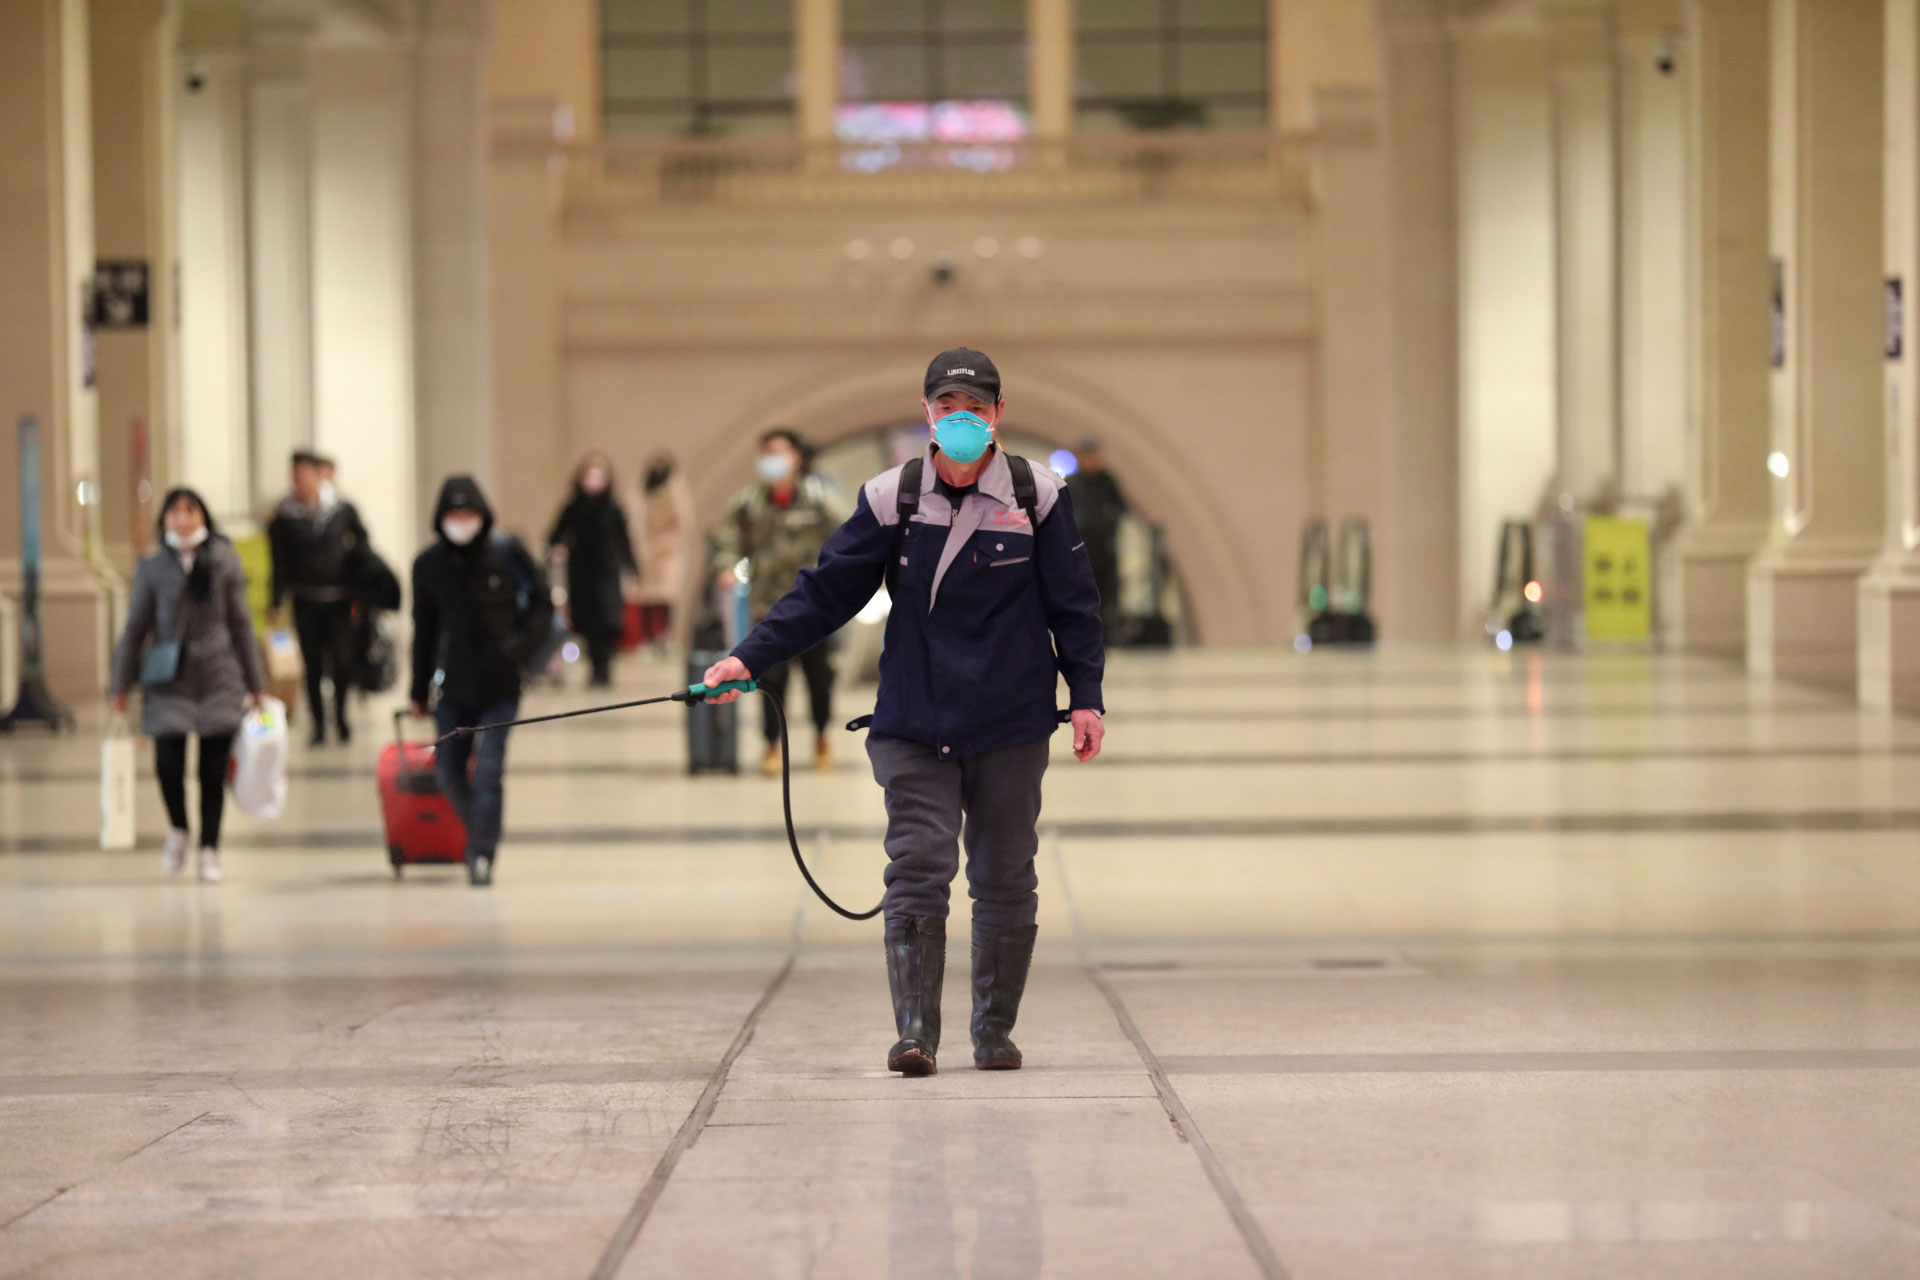 A worker disinfects a railway station in Wuhan, China, on Wednesday, January 22.